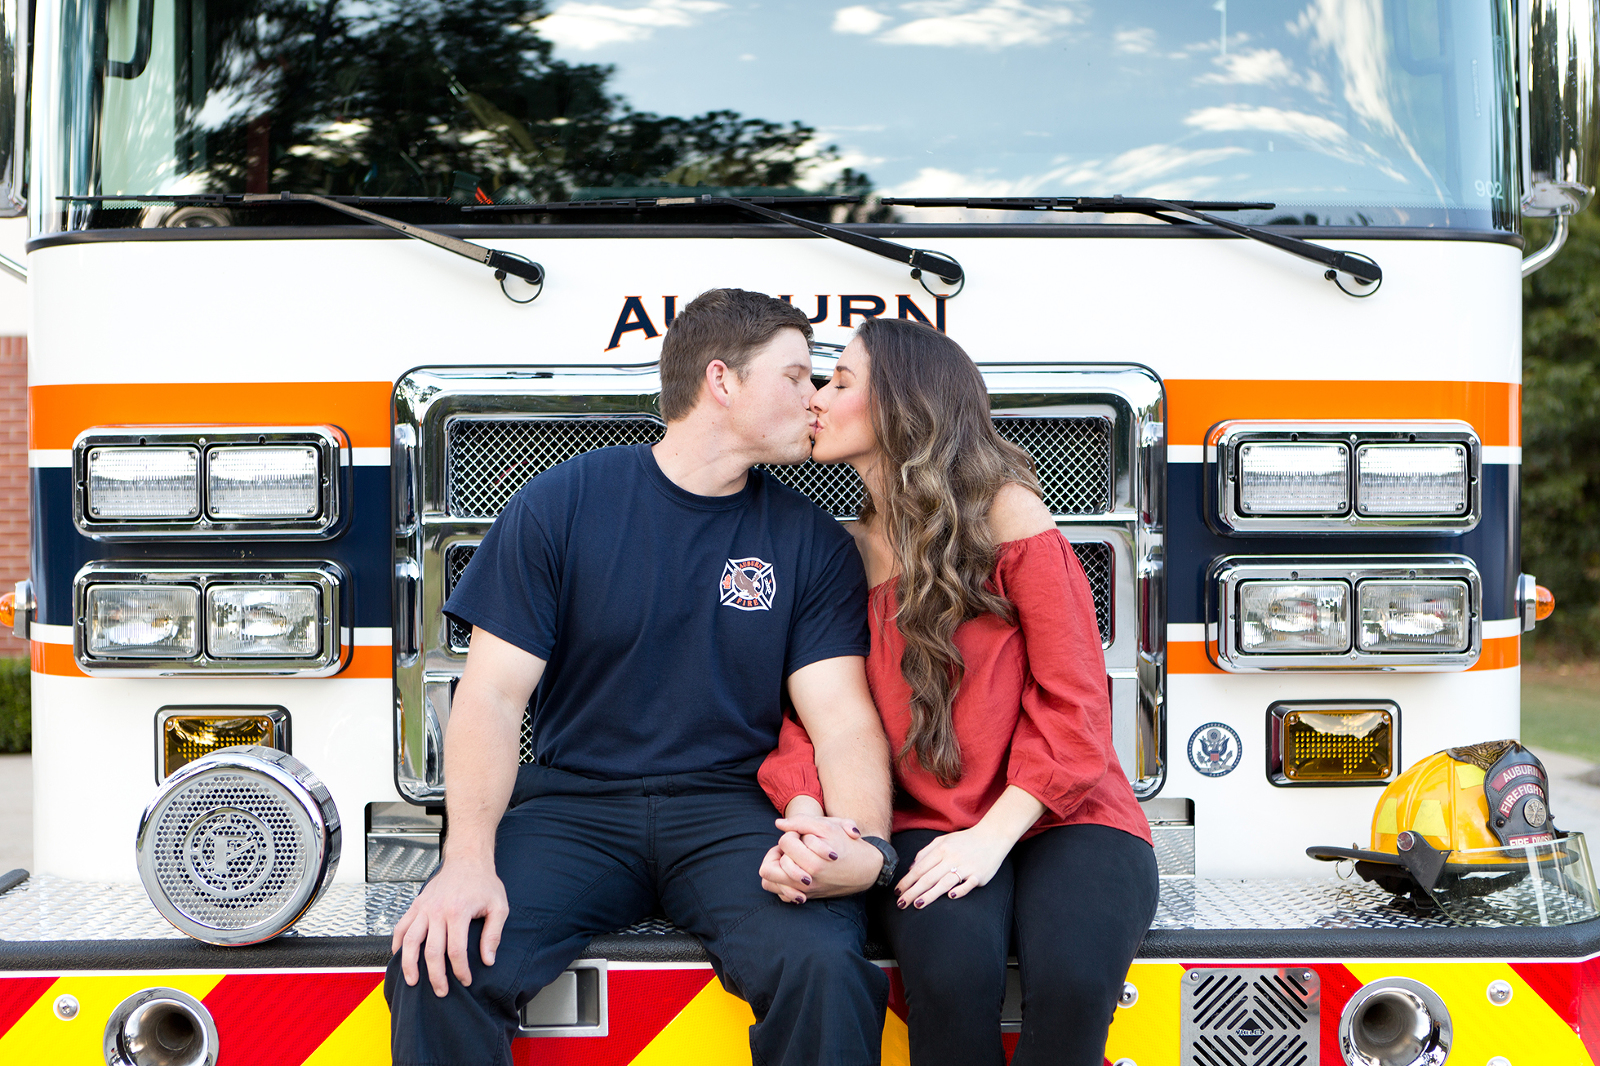 couple kissing while sitting on the front of an auburn fire truck